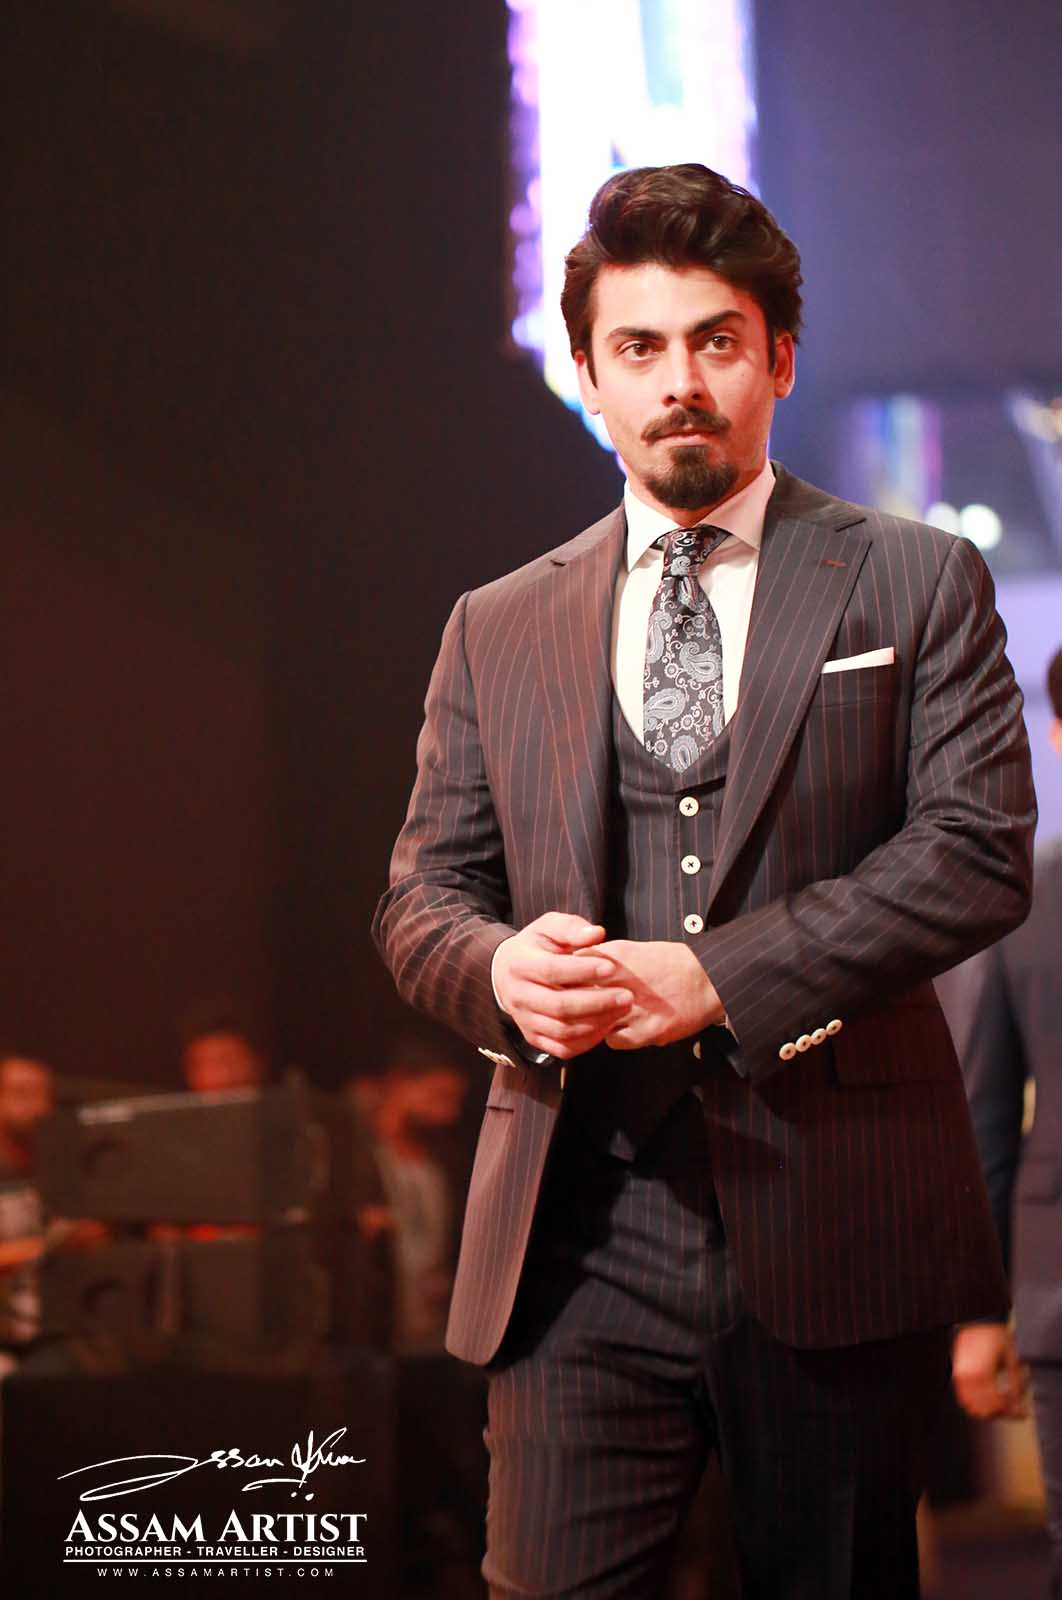 Fawad Afzal Khan - Actor